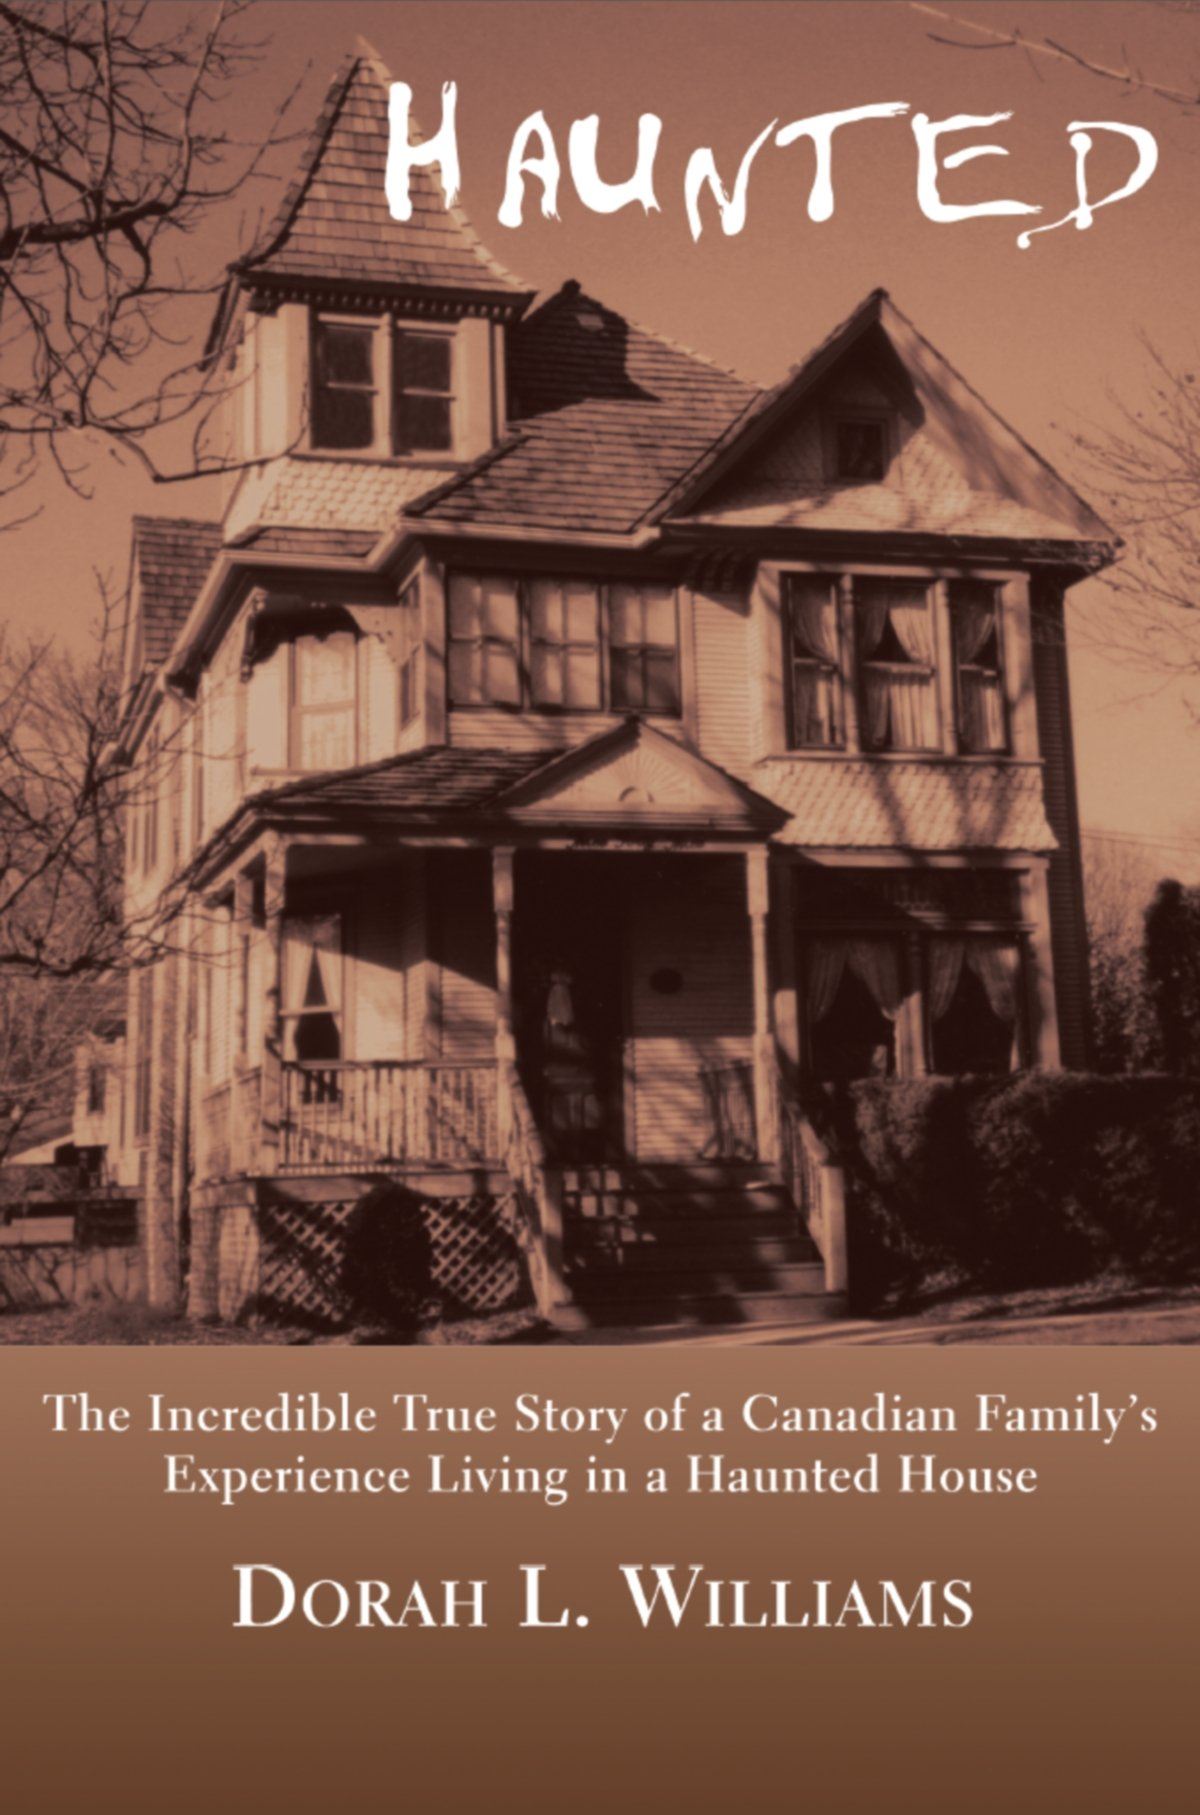 Haunted The Incredible True Story of a Canadian Familys